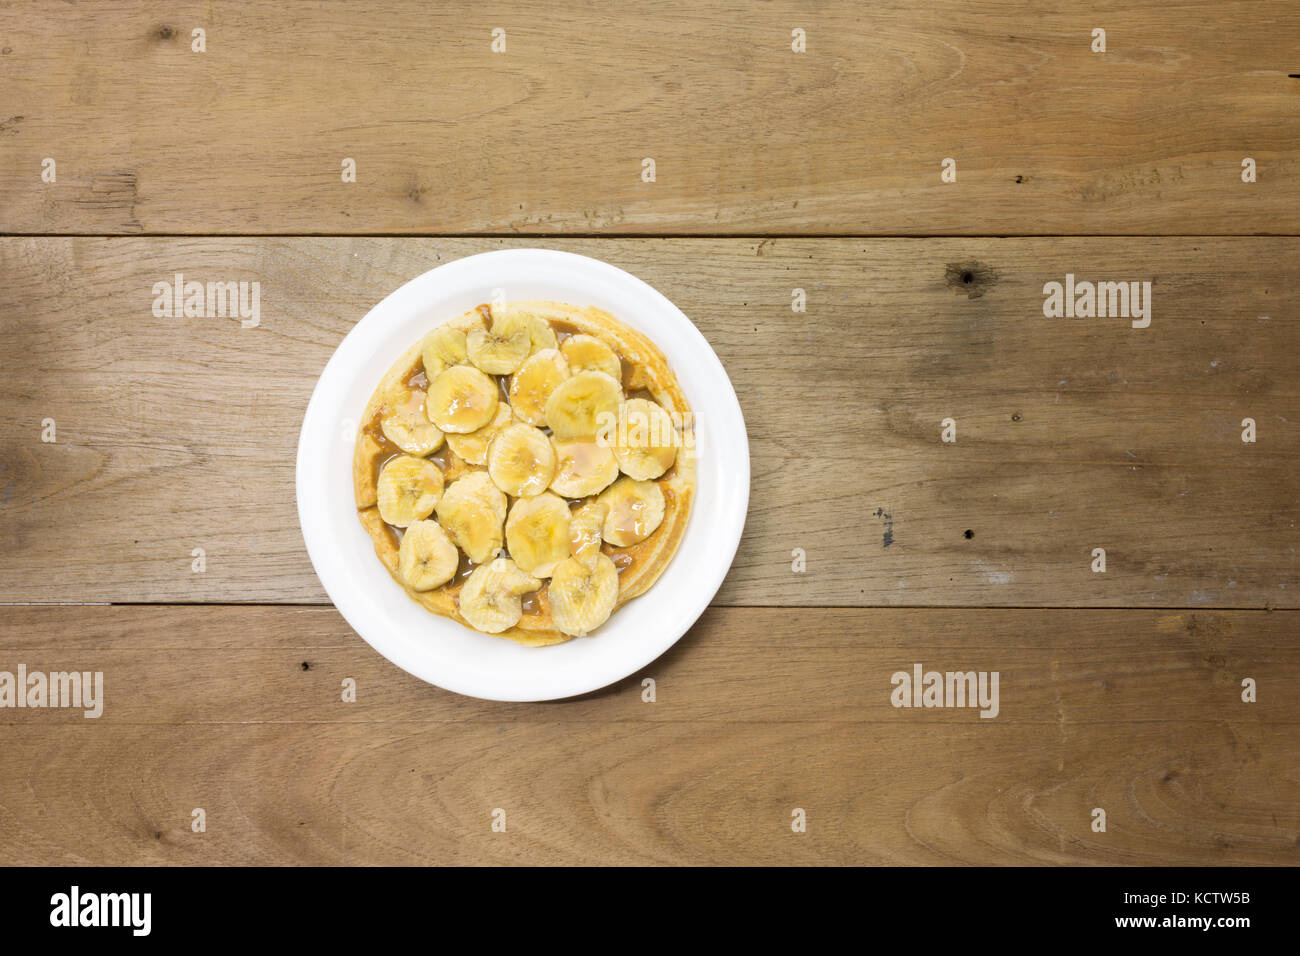 Waffle with milk caramel spread (Spanish: Dulce de leche) and banana slices on white plate, on wooden background, - Stock Image